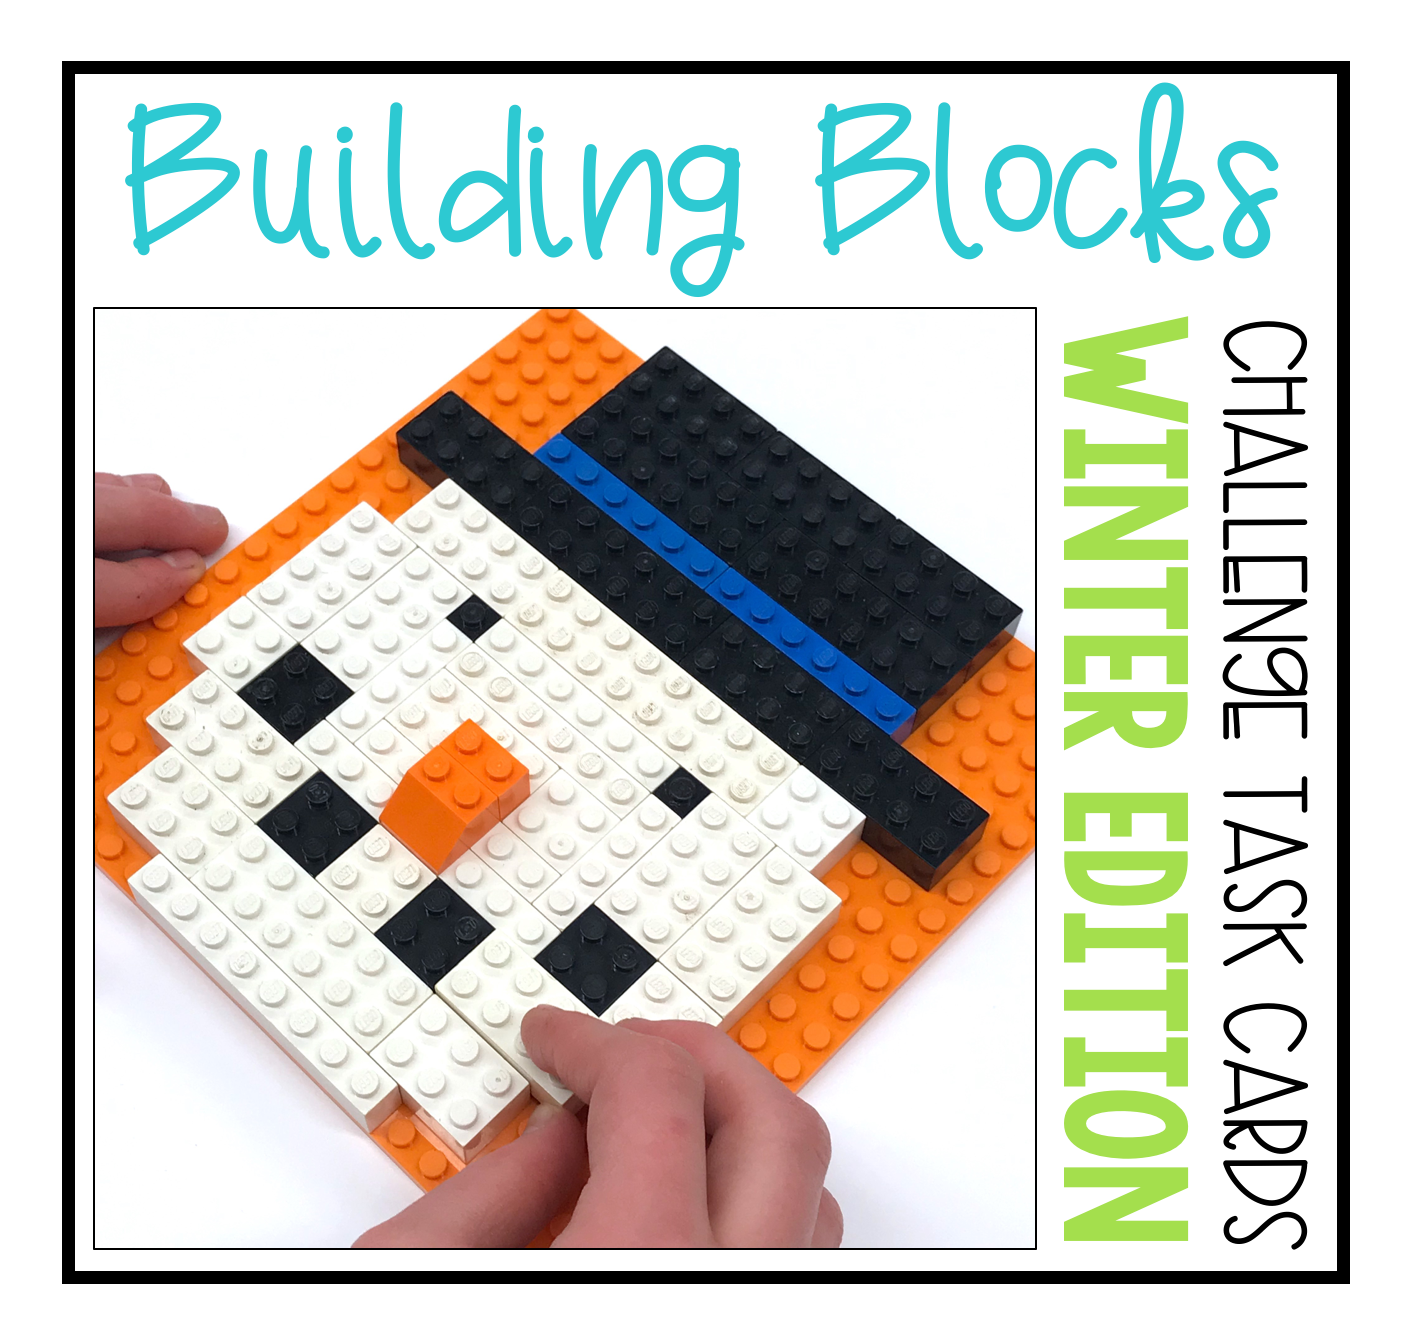 Building Blocks Are More Than Just Fun!